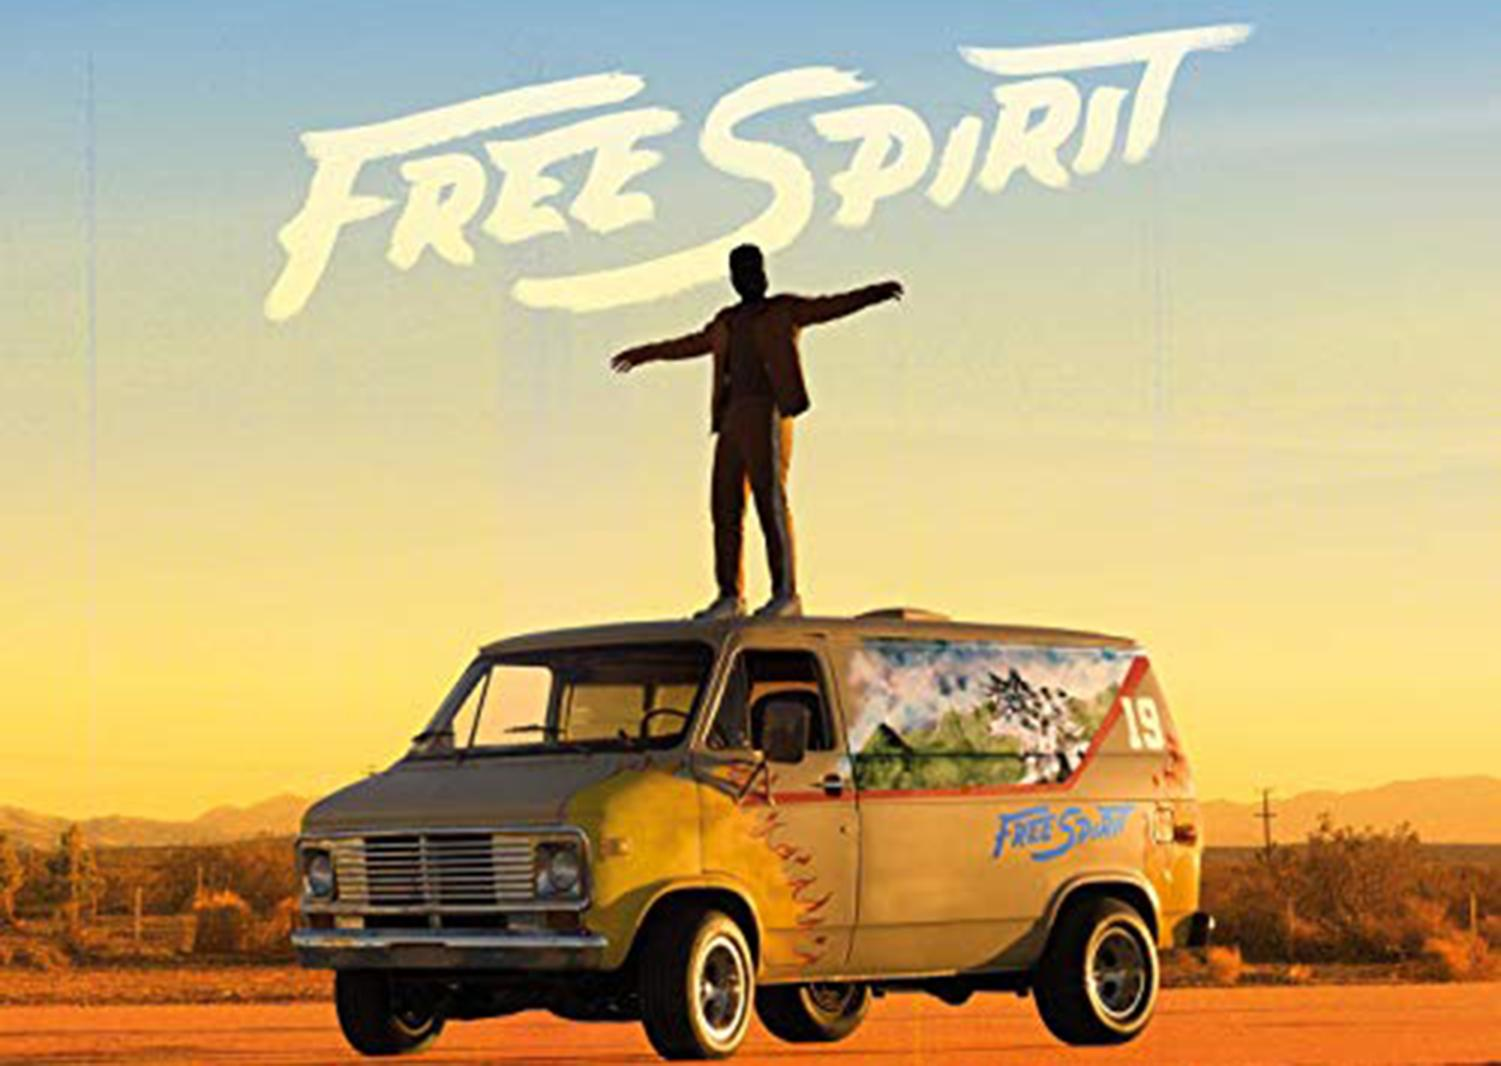 Khalid released his new album, Free Spirit April, 3.